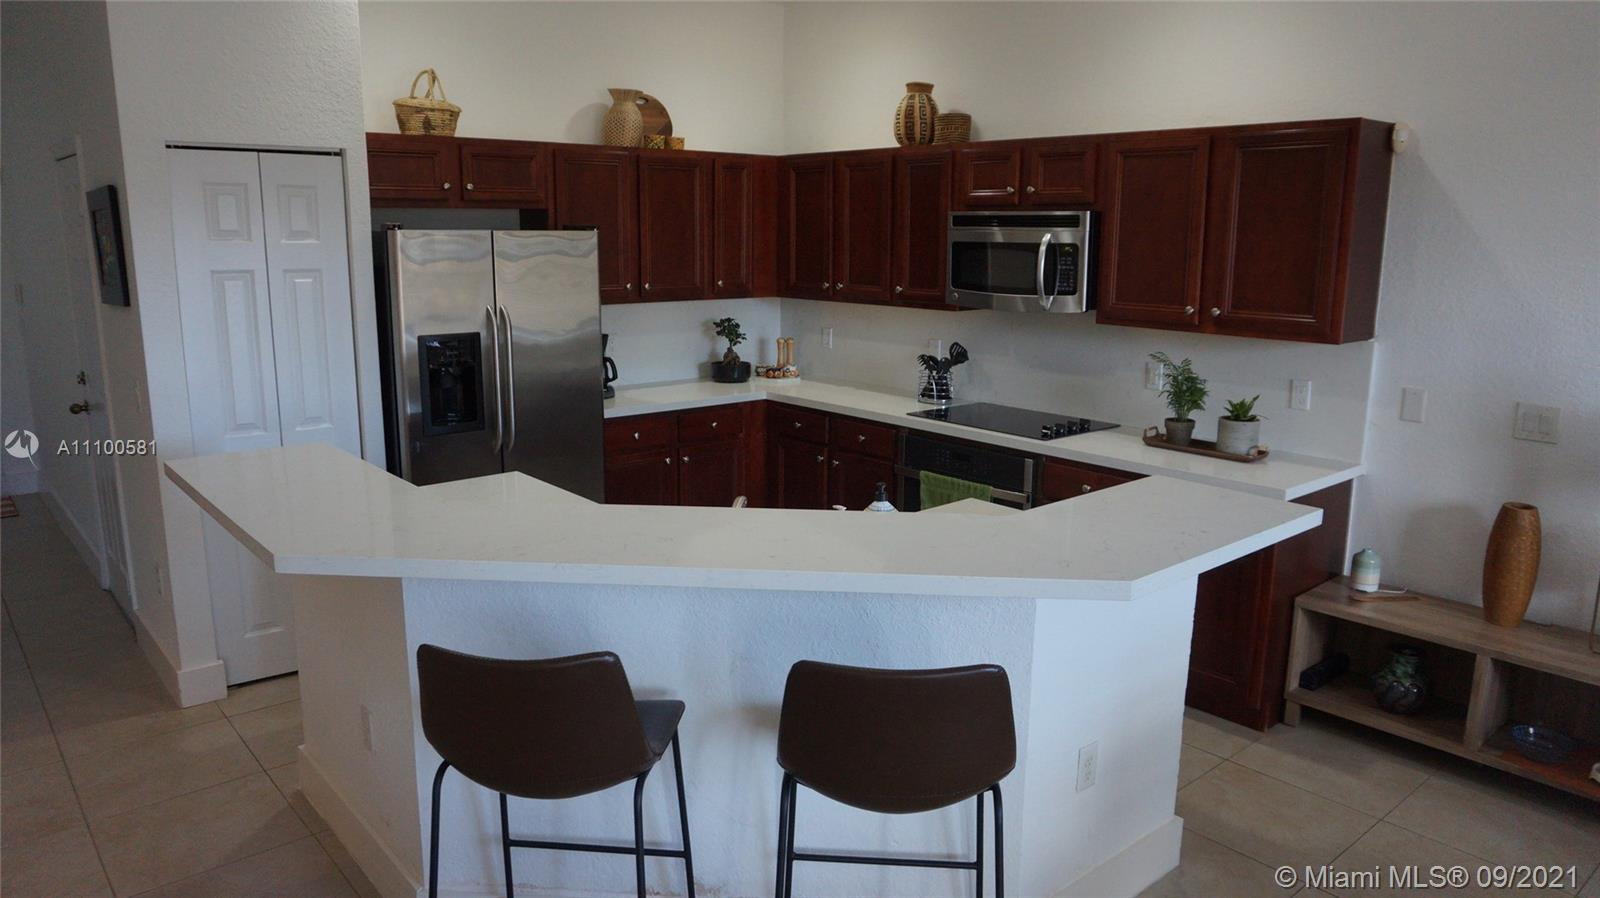 Condo For Rent at IVES DAIRY TOWNHOMES